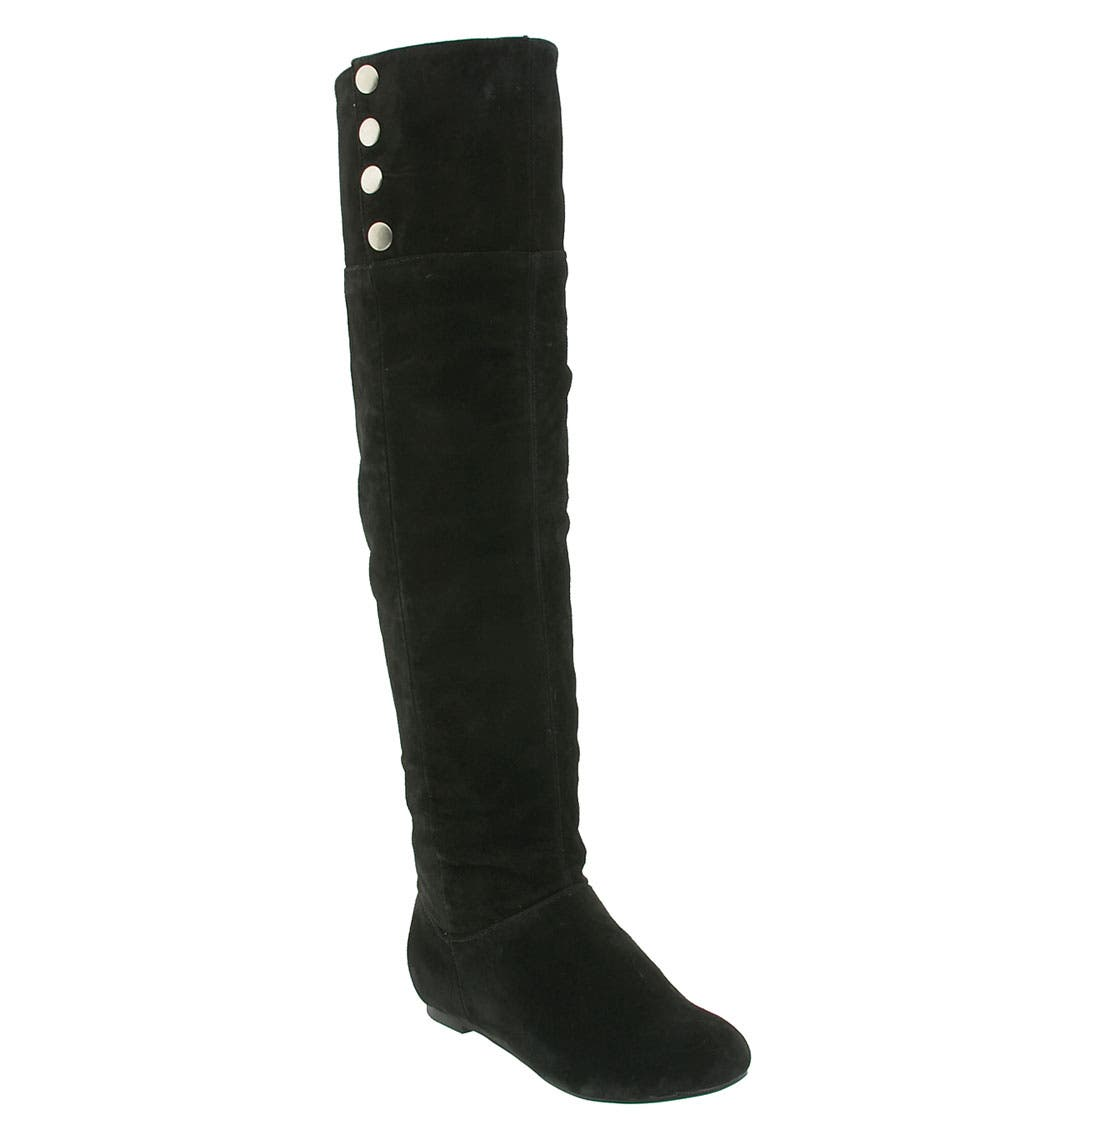 CHINESE LAUNDRY,                             'Trust Me' Over the Knee Boot,                             Main thumbnail 1, color,                             001